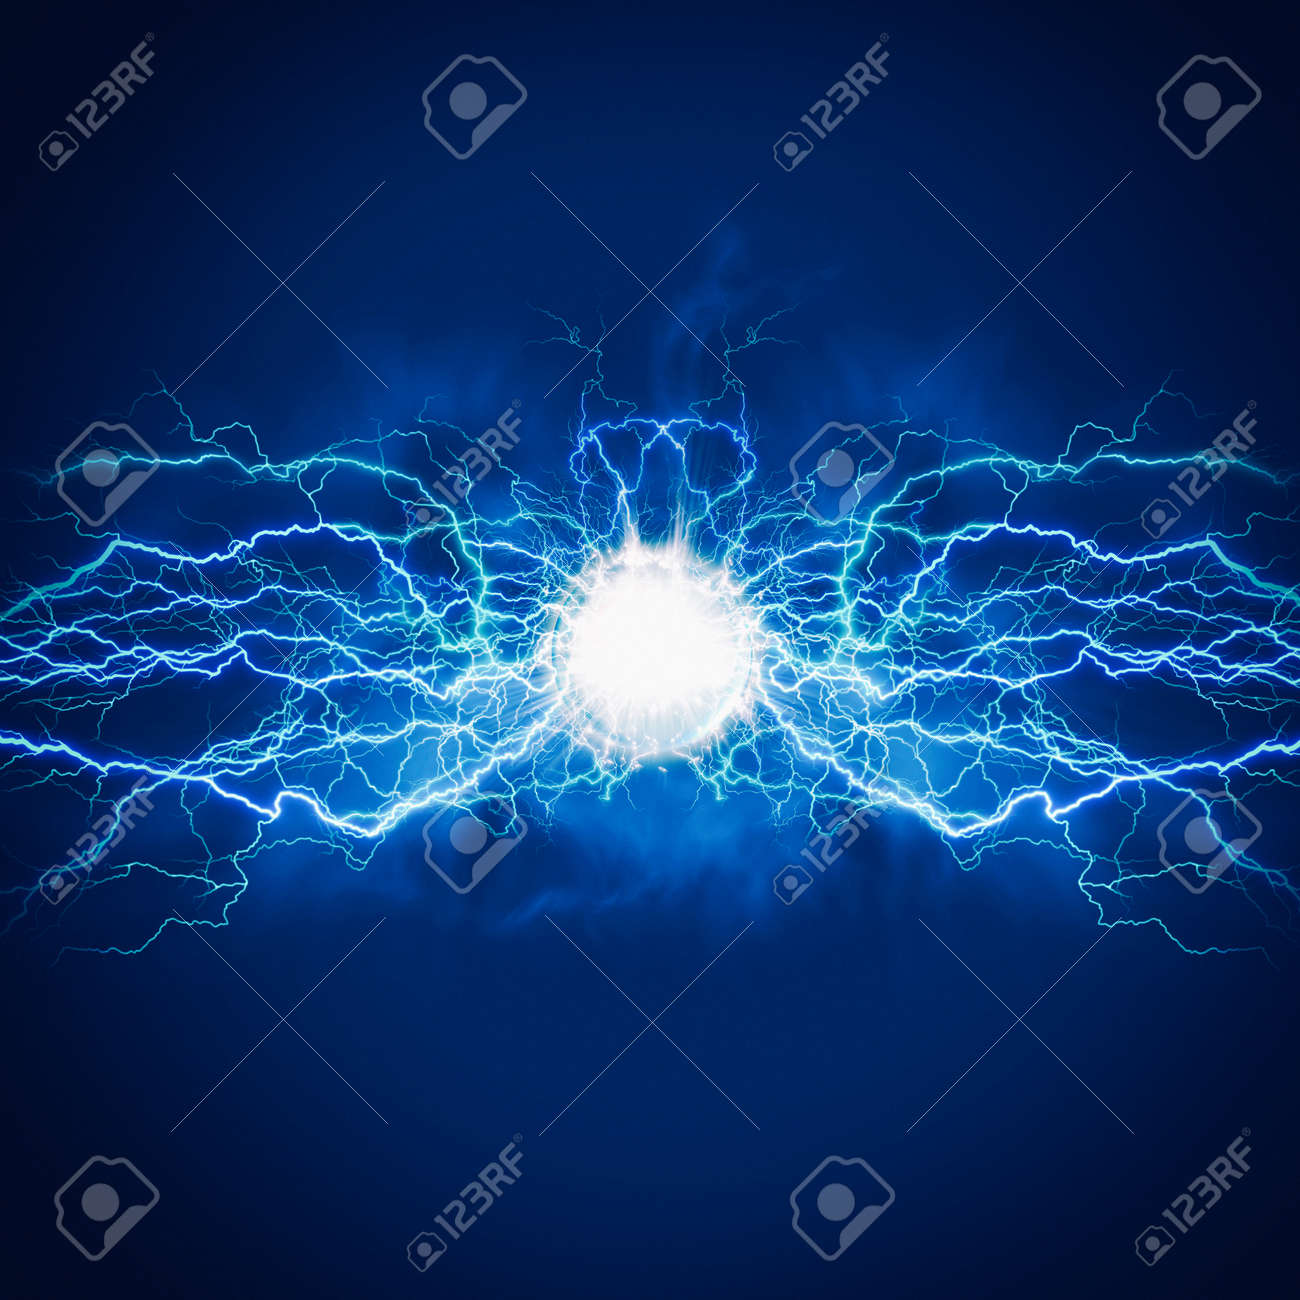 High voltage electric bolt. Teleport flash. Abstract power and energy backgrounds - 159256714